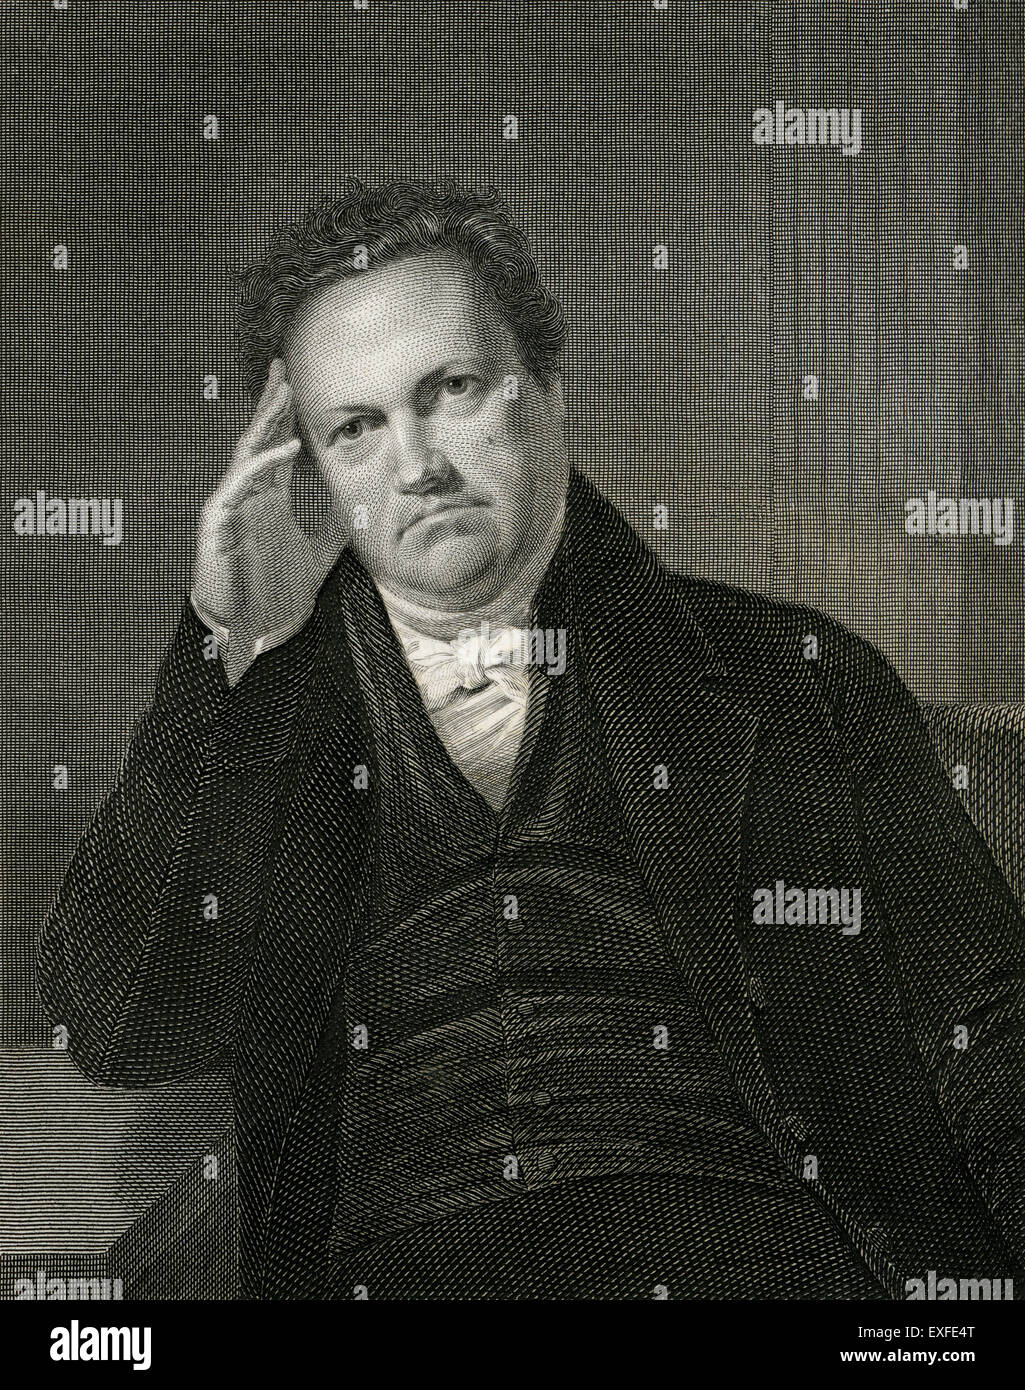 Antique c1860 engraving, DeWitt Clinton. DeWitt Clinton (1769-1828) was an early American politician and naturalist - Stock Image